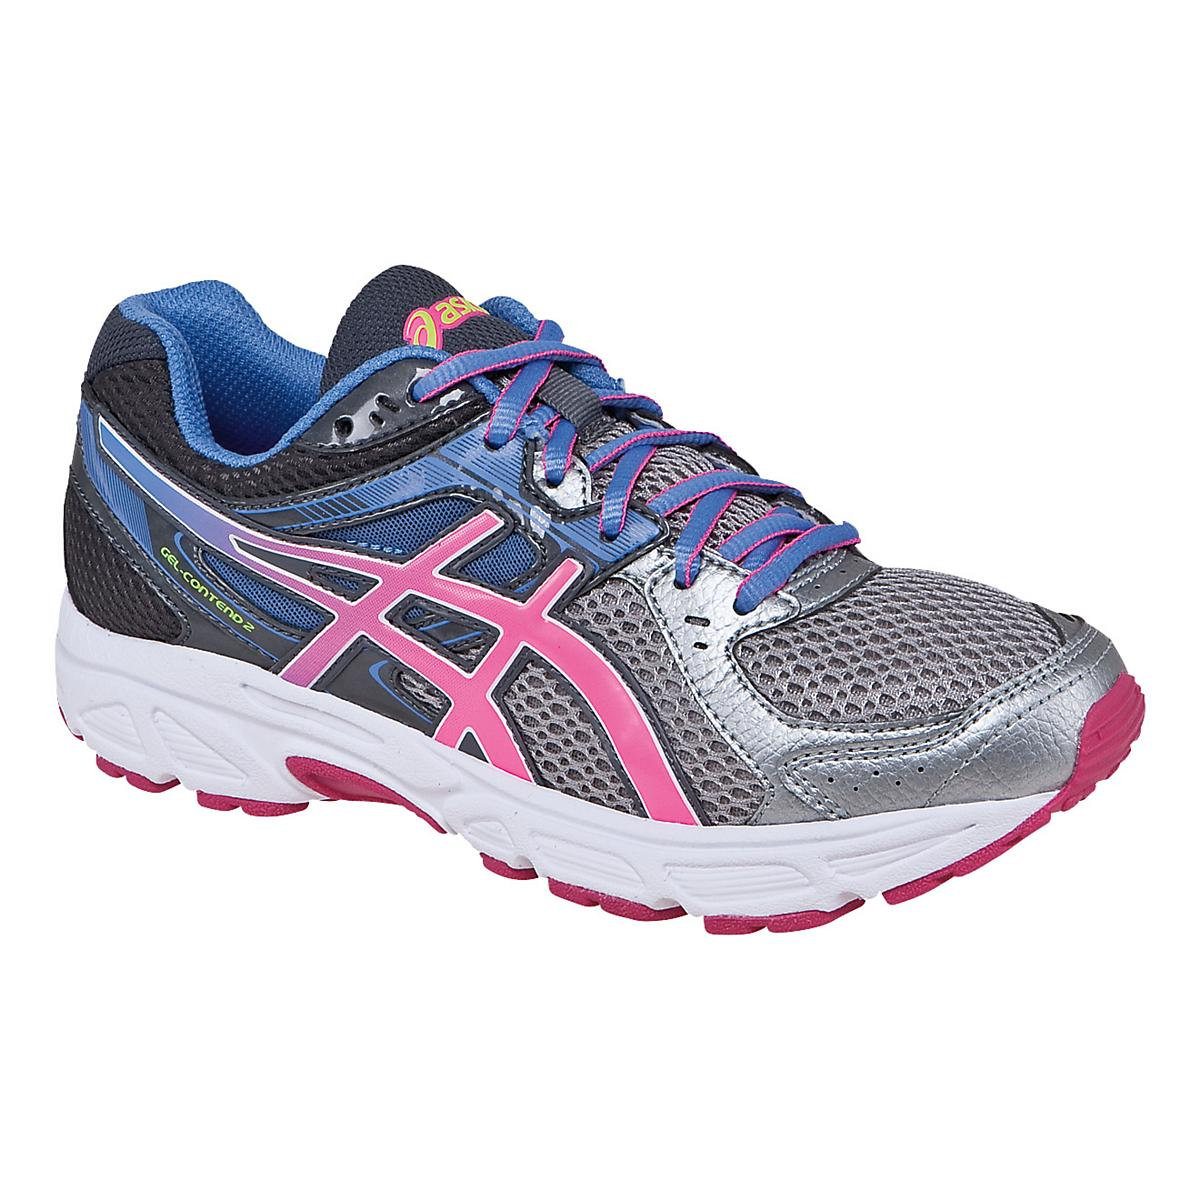 Womens ASICS GEL-Contend 2 Running Shoe at Road Runner Sports dcc153b359